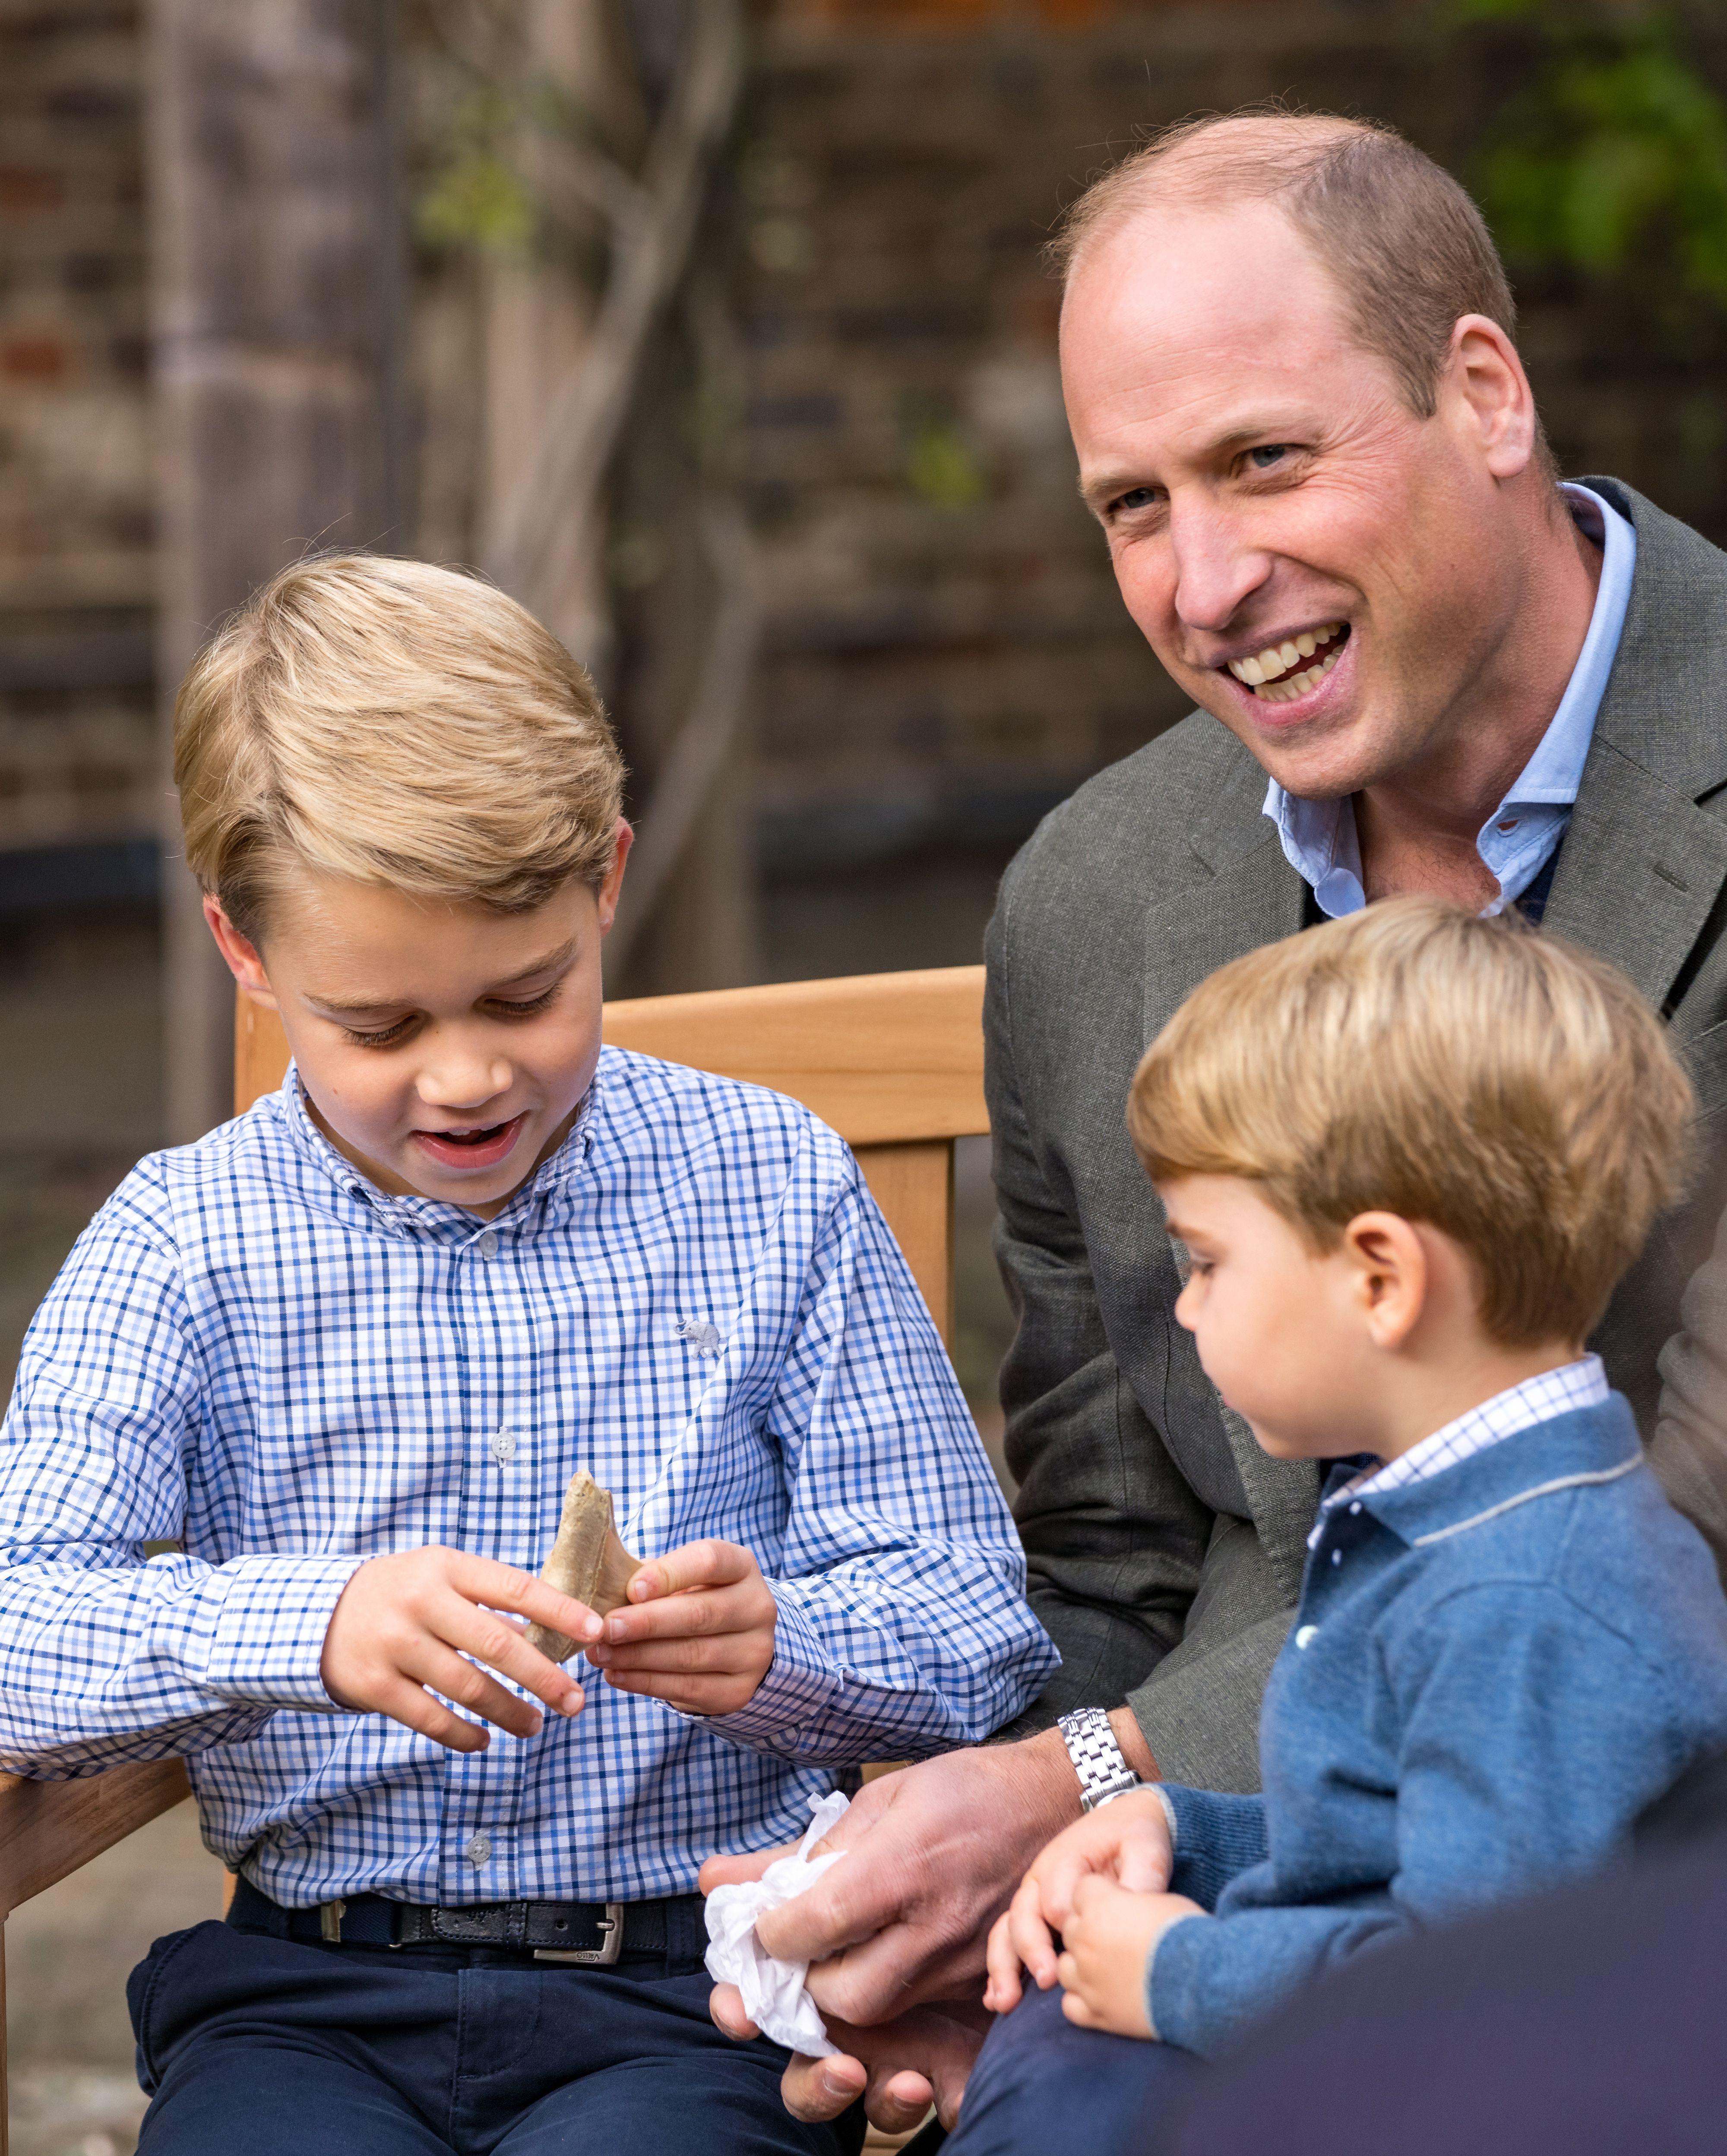 Prince George, Prince William, and Prince Louisin the gardens of Kensington Palaceon September 24, 2020, in London, England | Photo:Kensington Palace/Getty Images